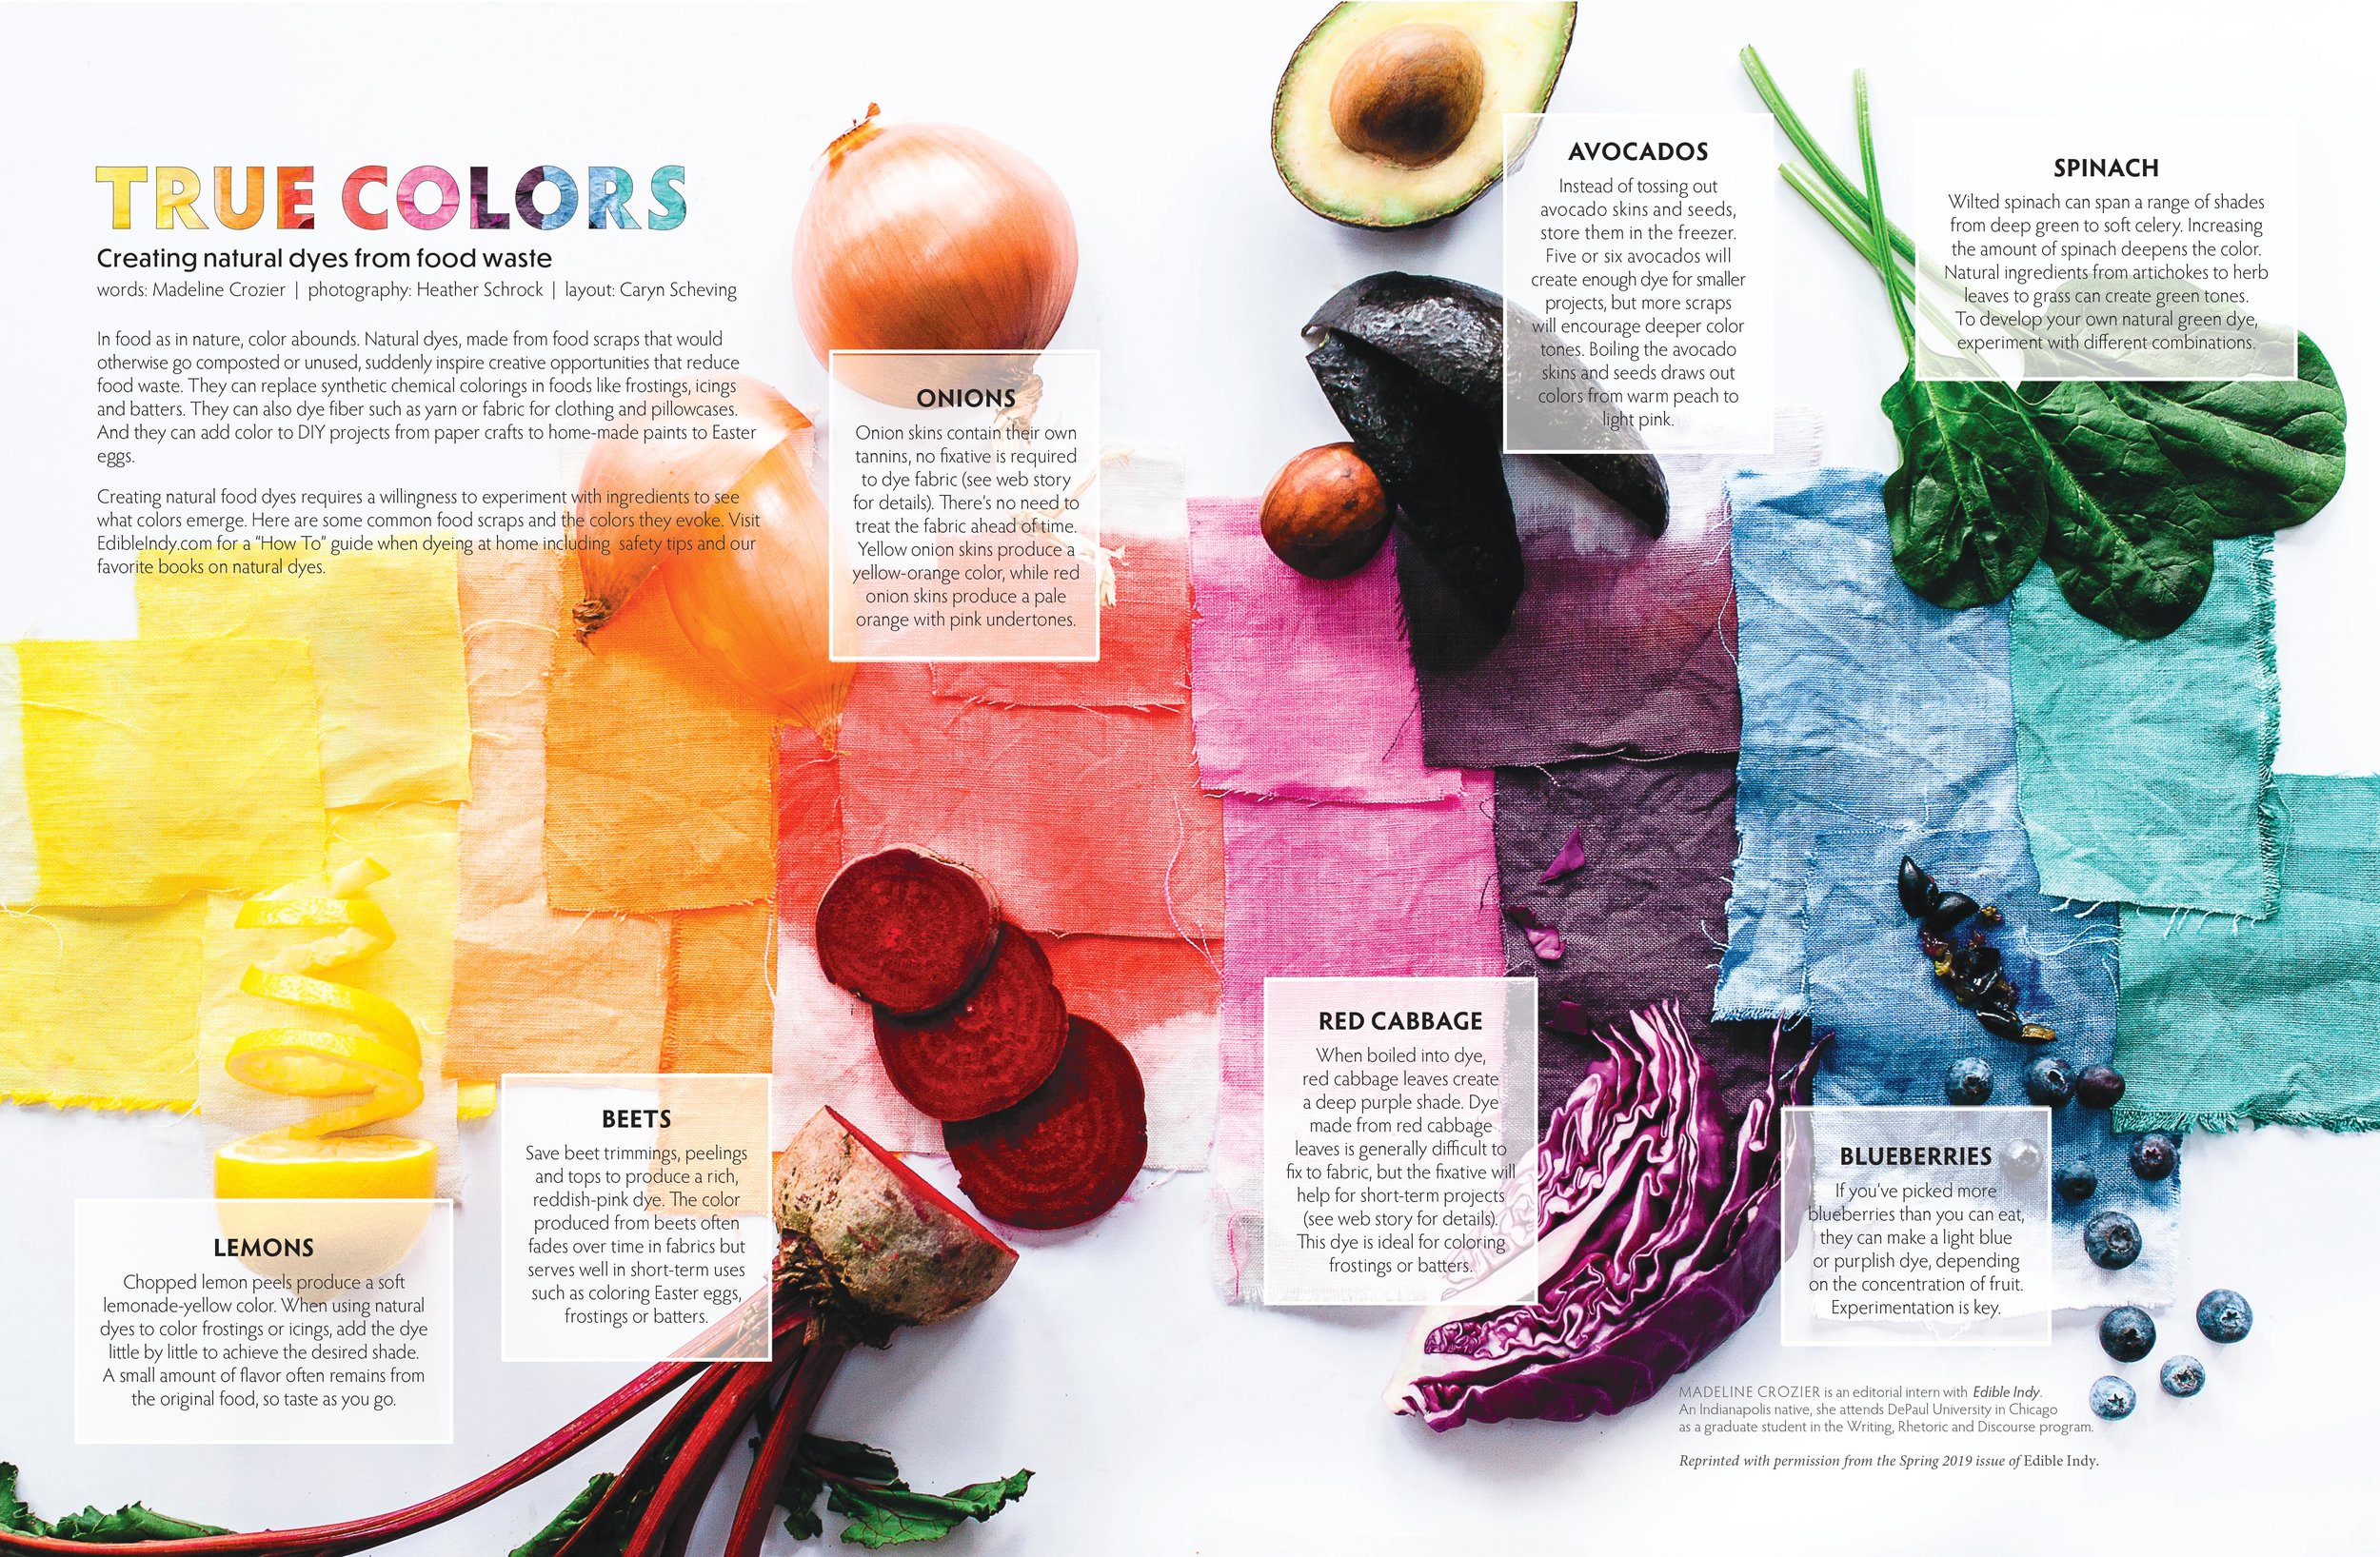 True Colors: Creating Natural Easter Egg Dyes from Food Waste ...